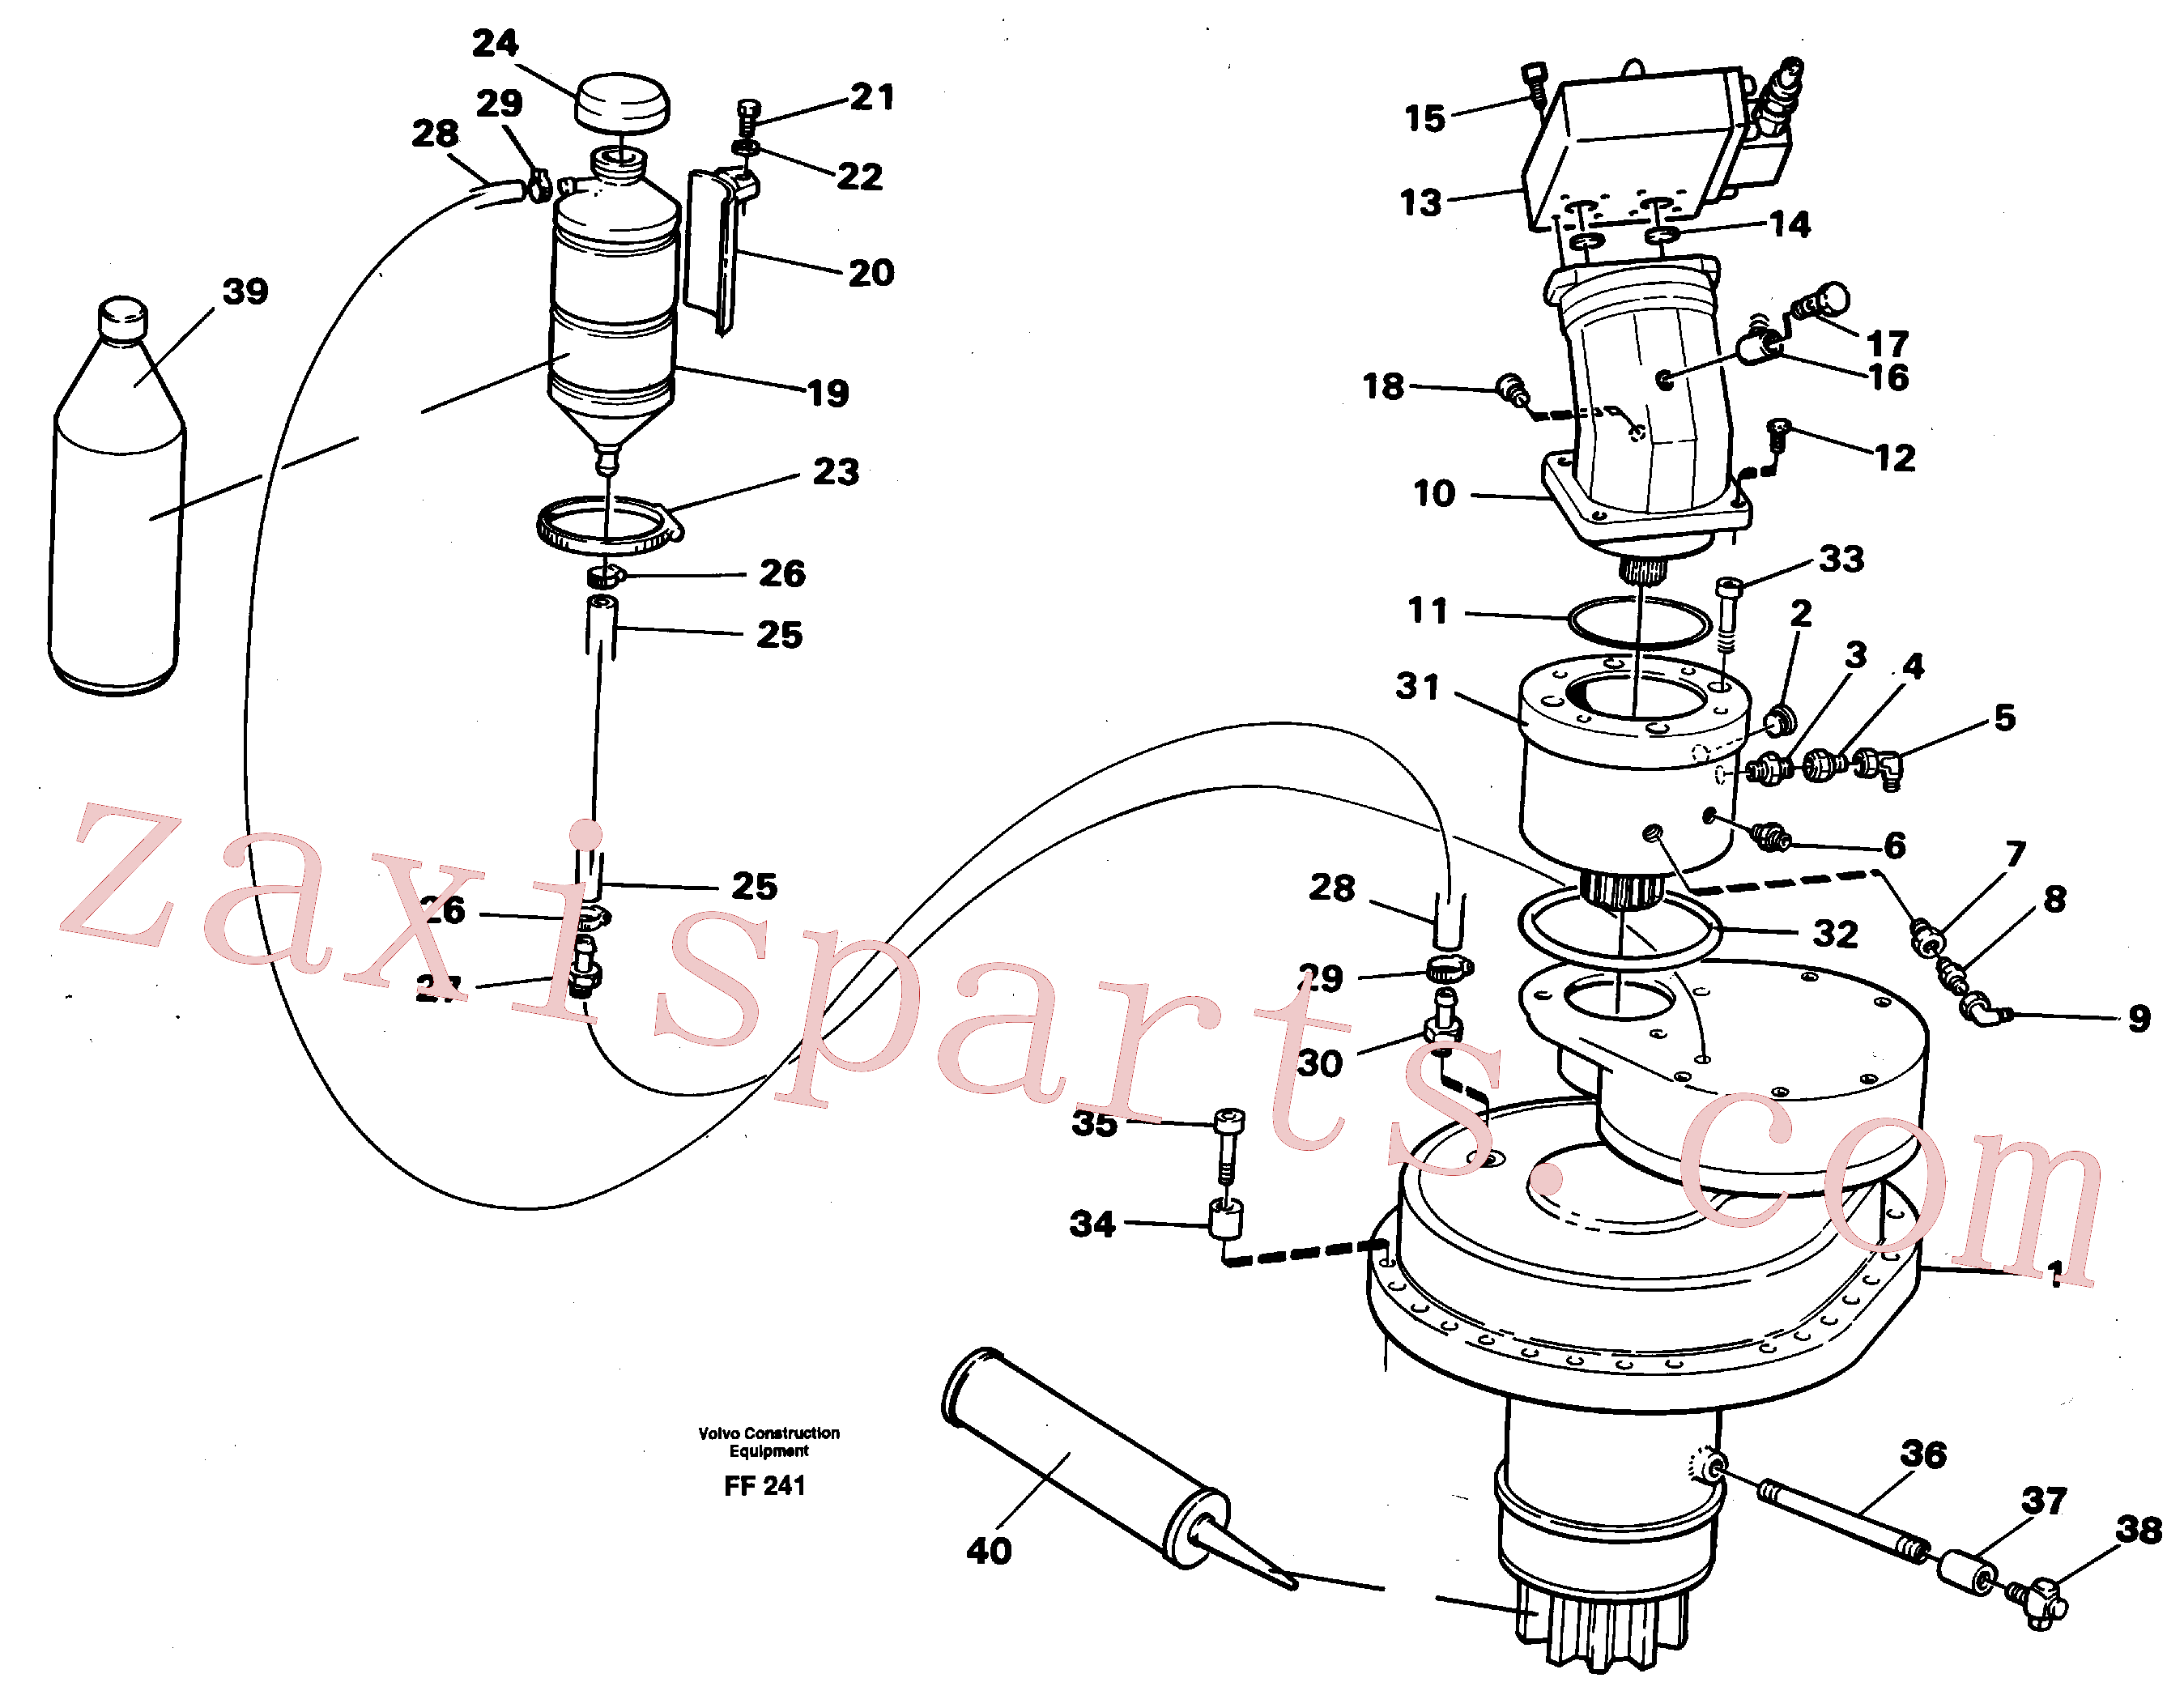 VOE14213275 for Volvo Slewing gear box with fitting parts(FF241 assembly)